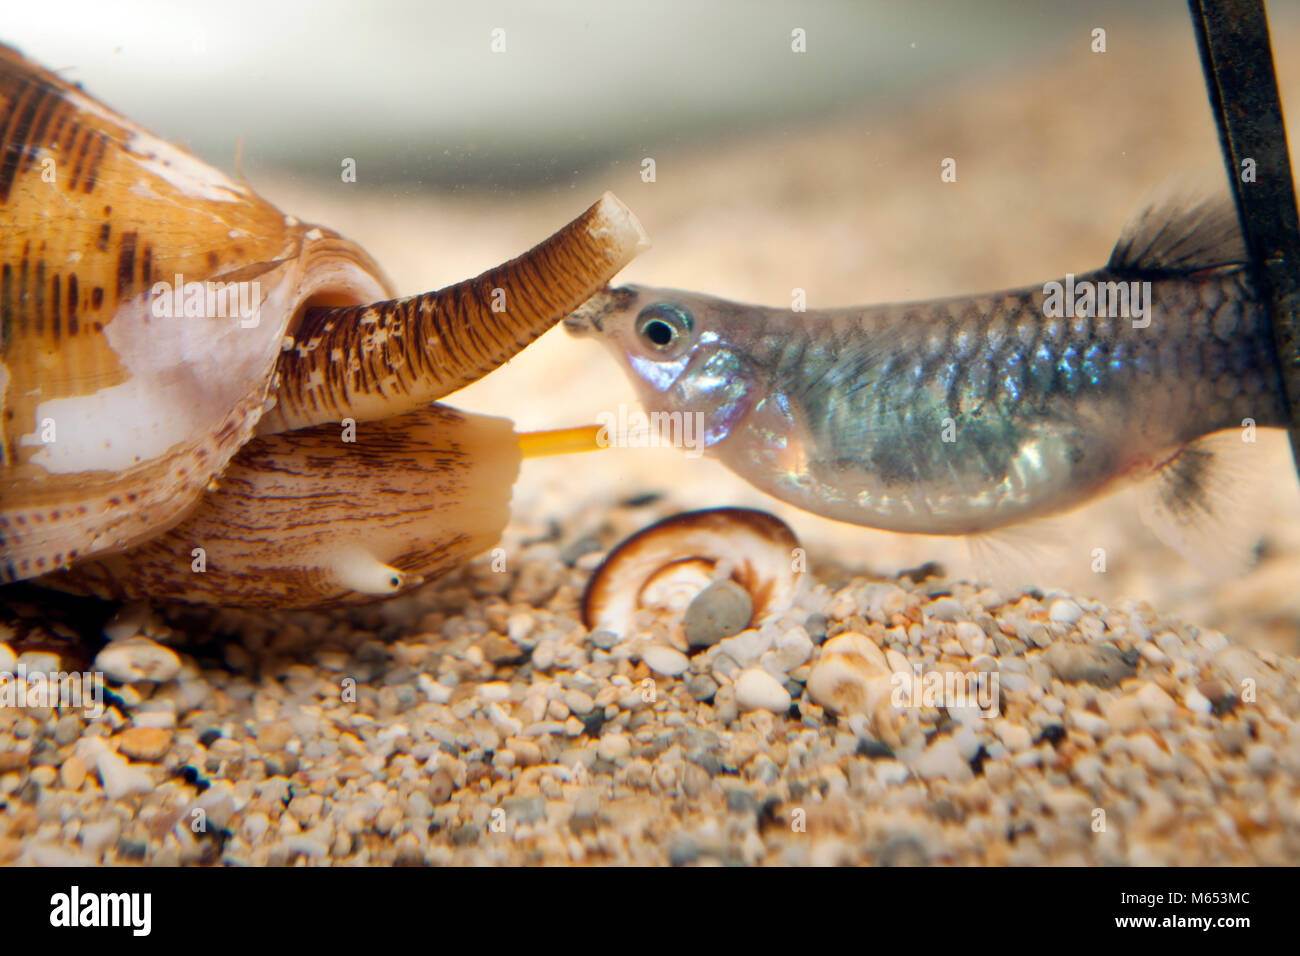 Native to reefs throughout the Indo-Pacific region, Conus striatus venom might be medically valuable because it - Stock Image